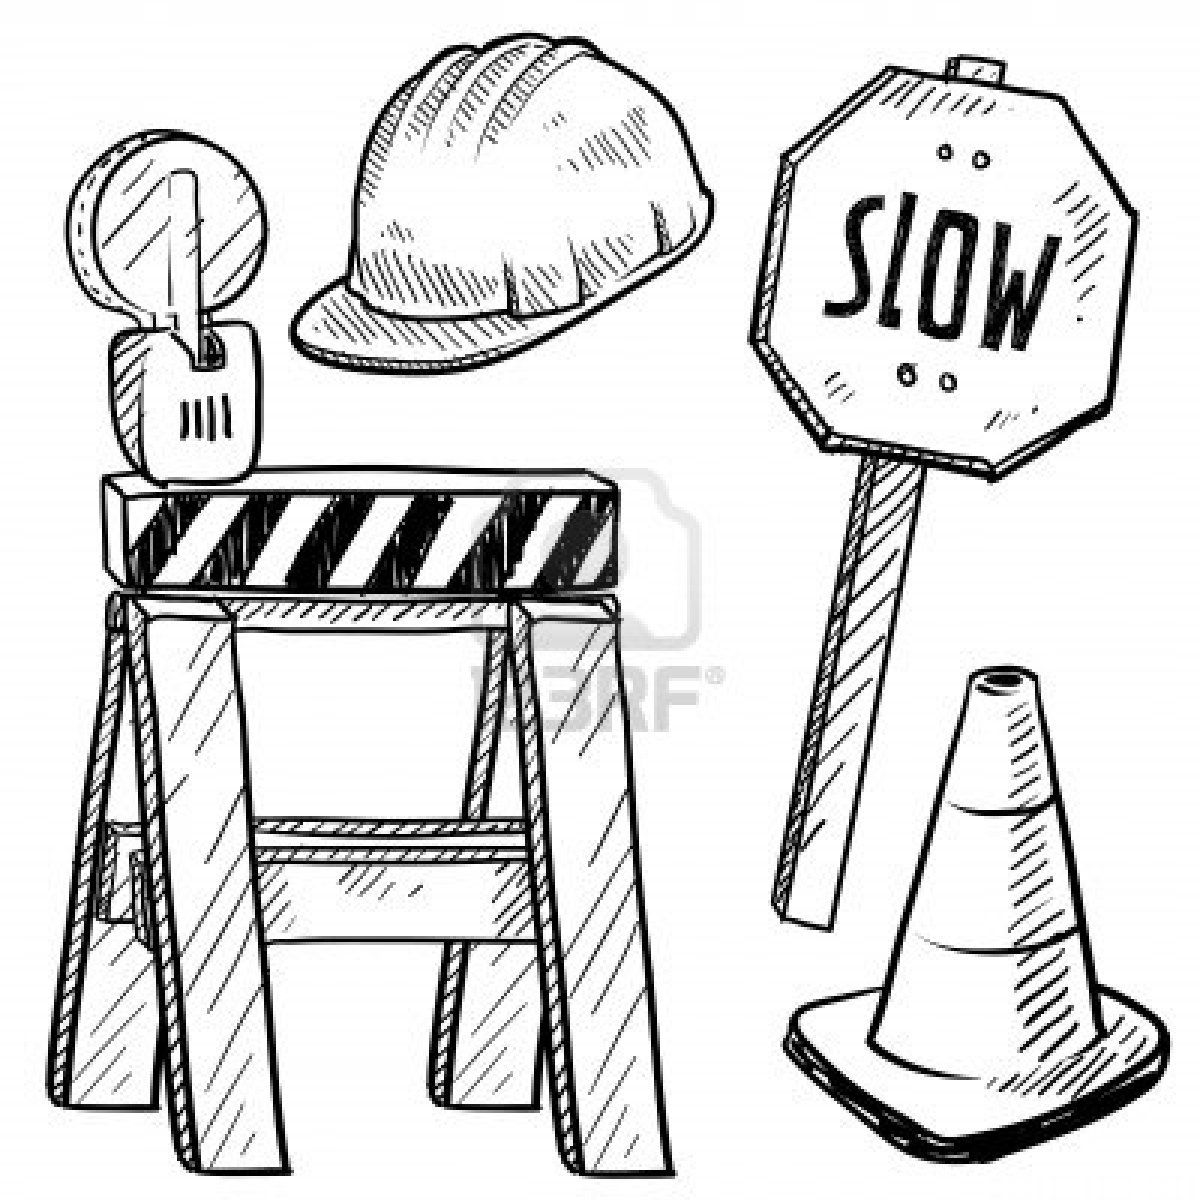 Construction Sign Coloring Page Google Search Kids Birthdays